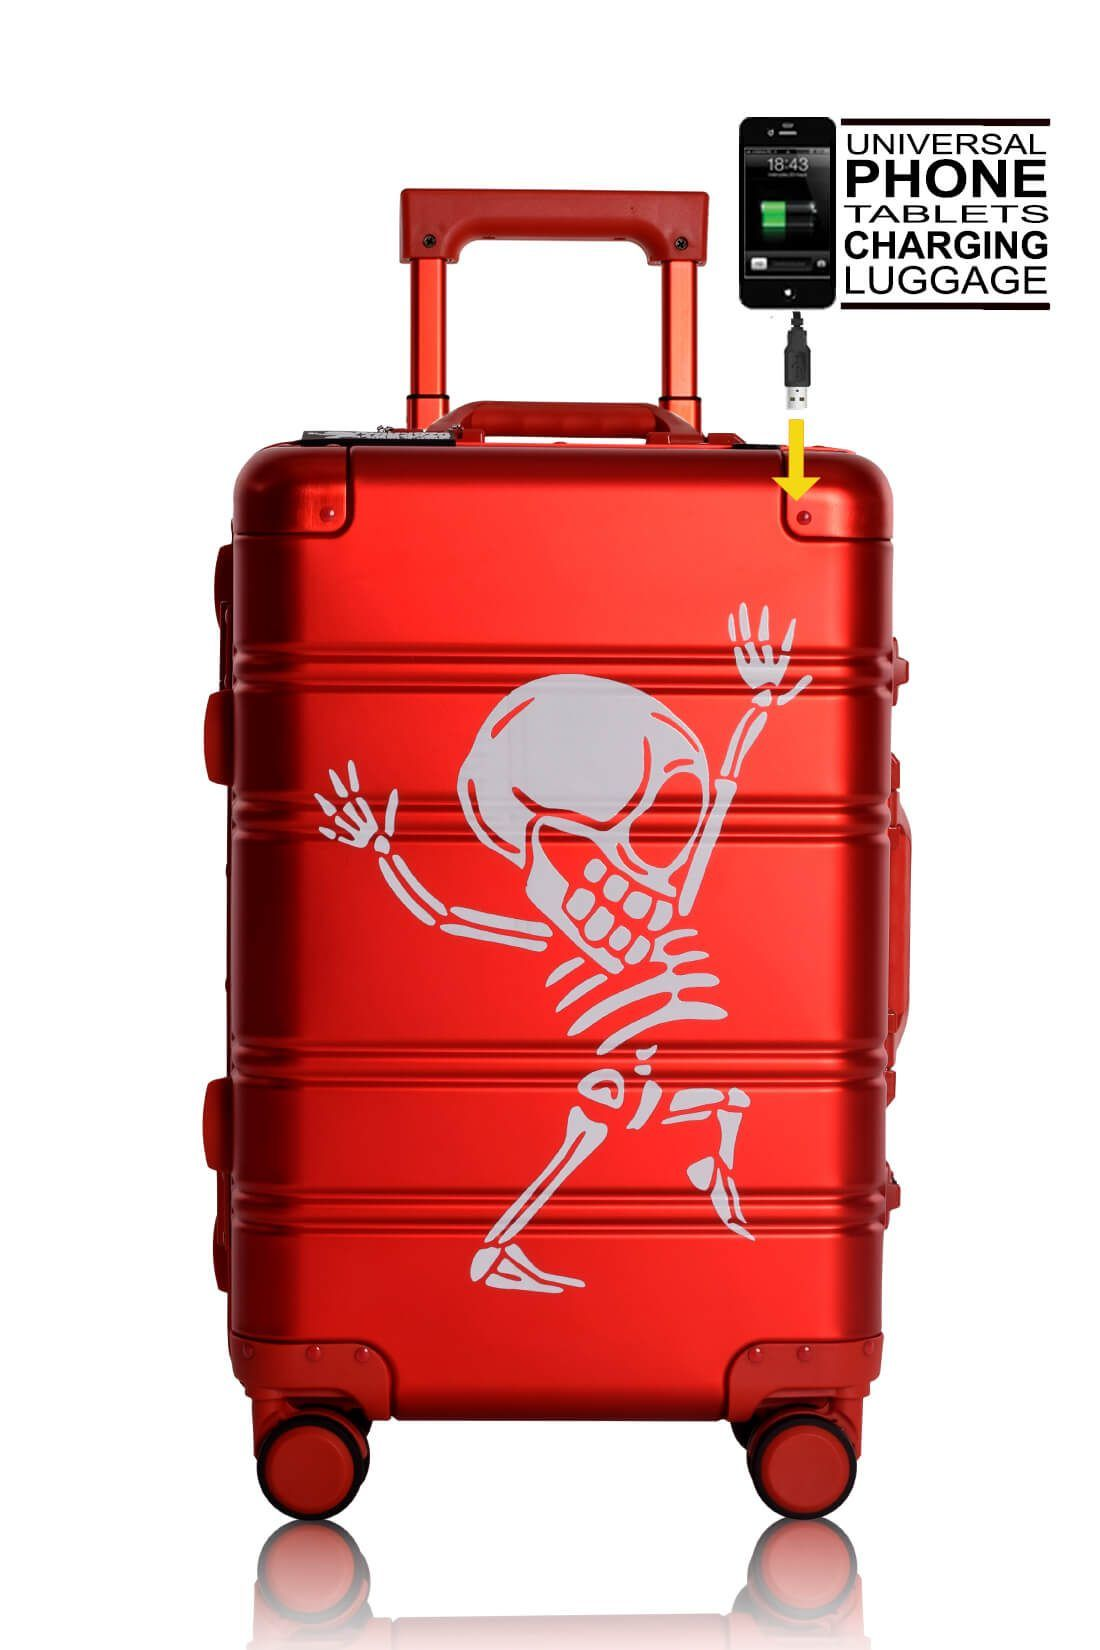 Valise Aluminium Online Cabine Trolley Avec Chargeur Powerbank TOKYOTO LUGGAGE Modelle RED SILVER 6 - copia